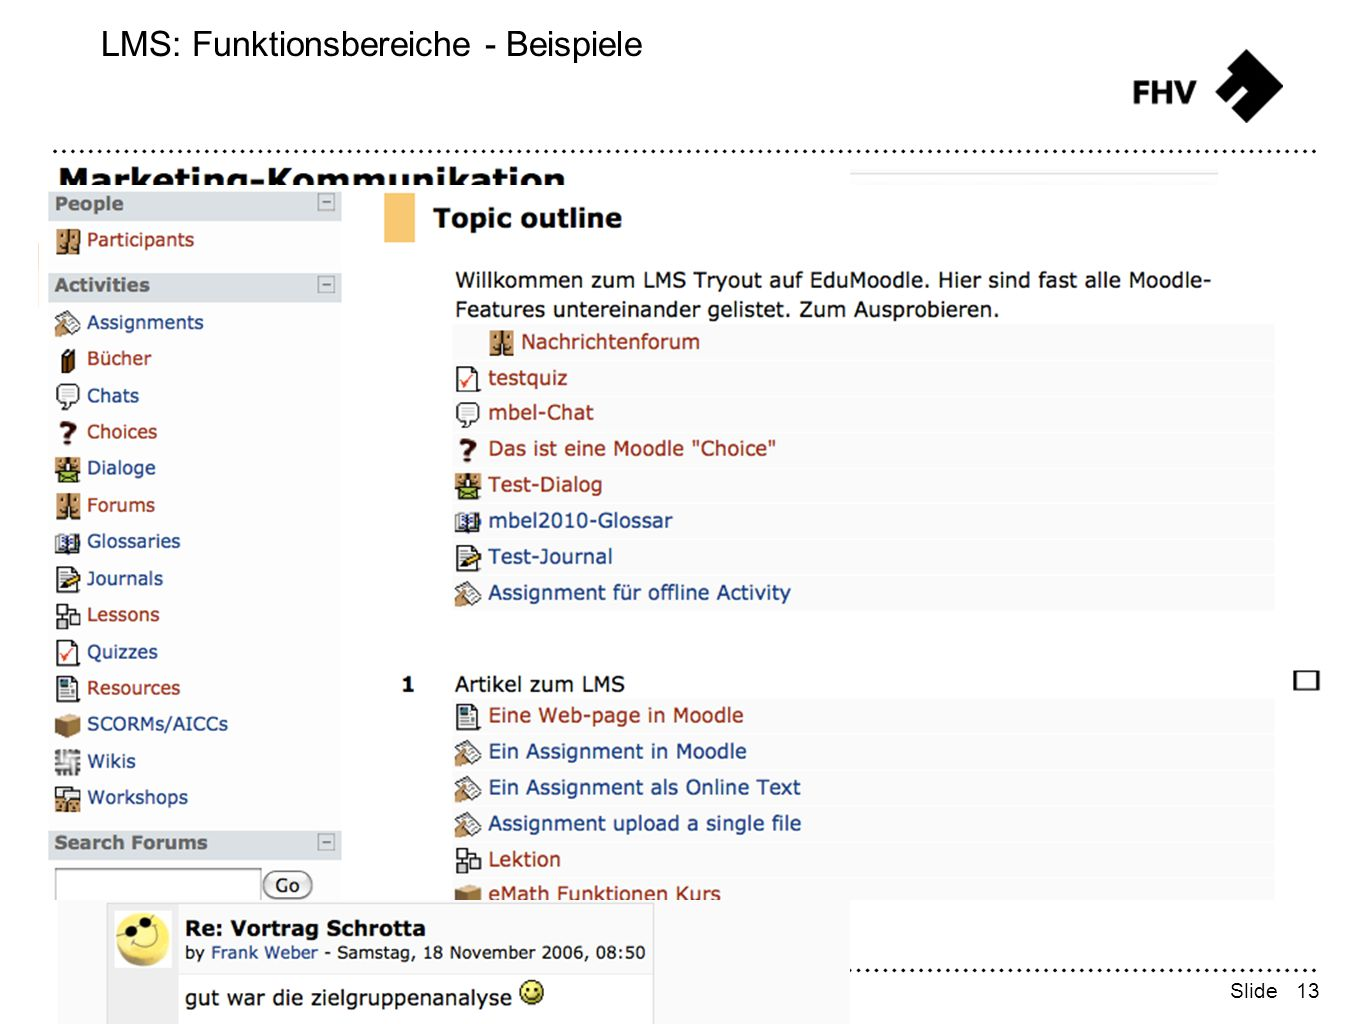 13 FHV Learning Support - Frank Weber Slide LMS: Funktionsbereiche - Beispiele